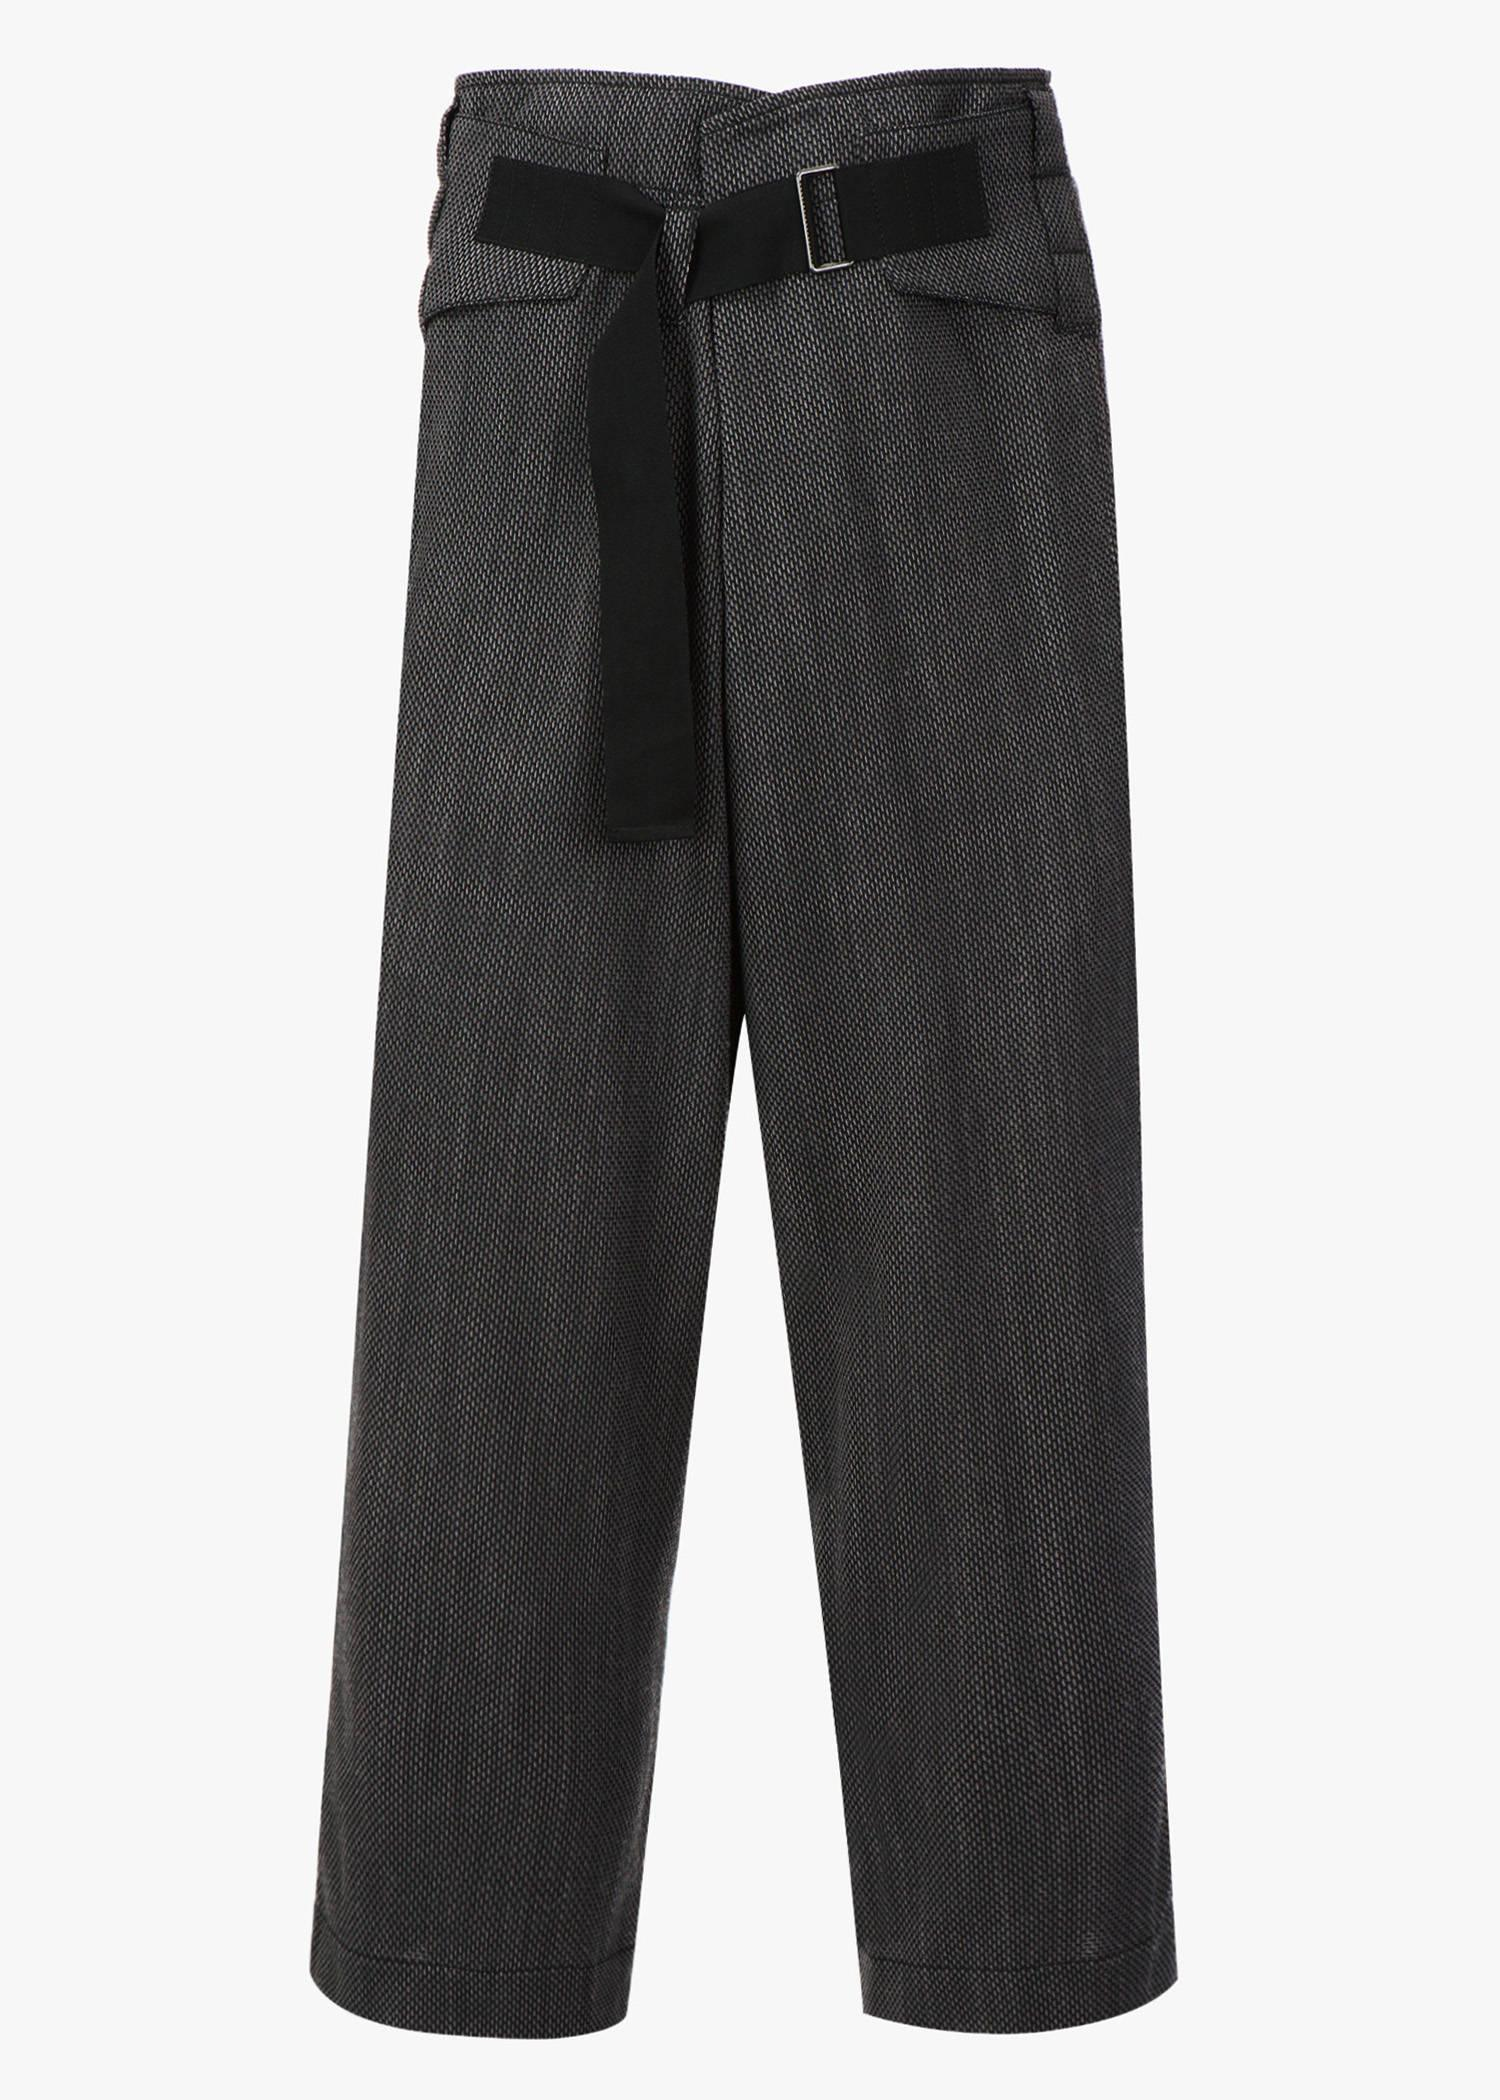 Ann Demeulemeester Belted Loose-Fit Trousers In Grey/Black